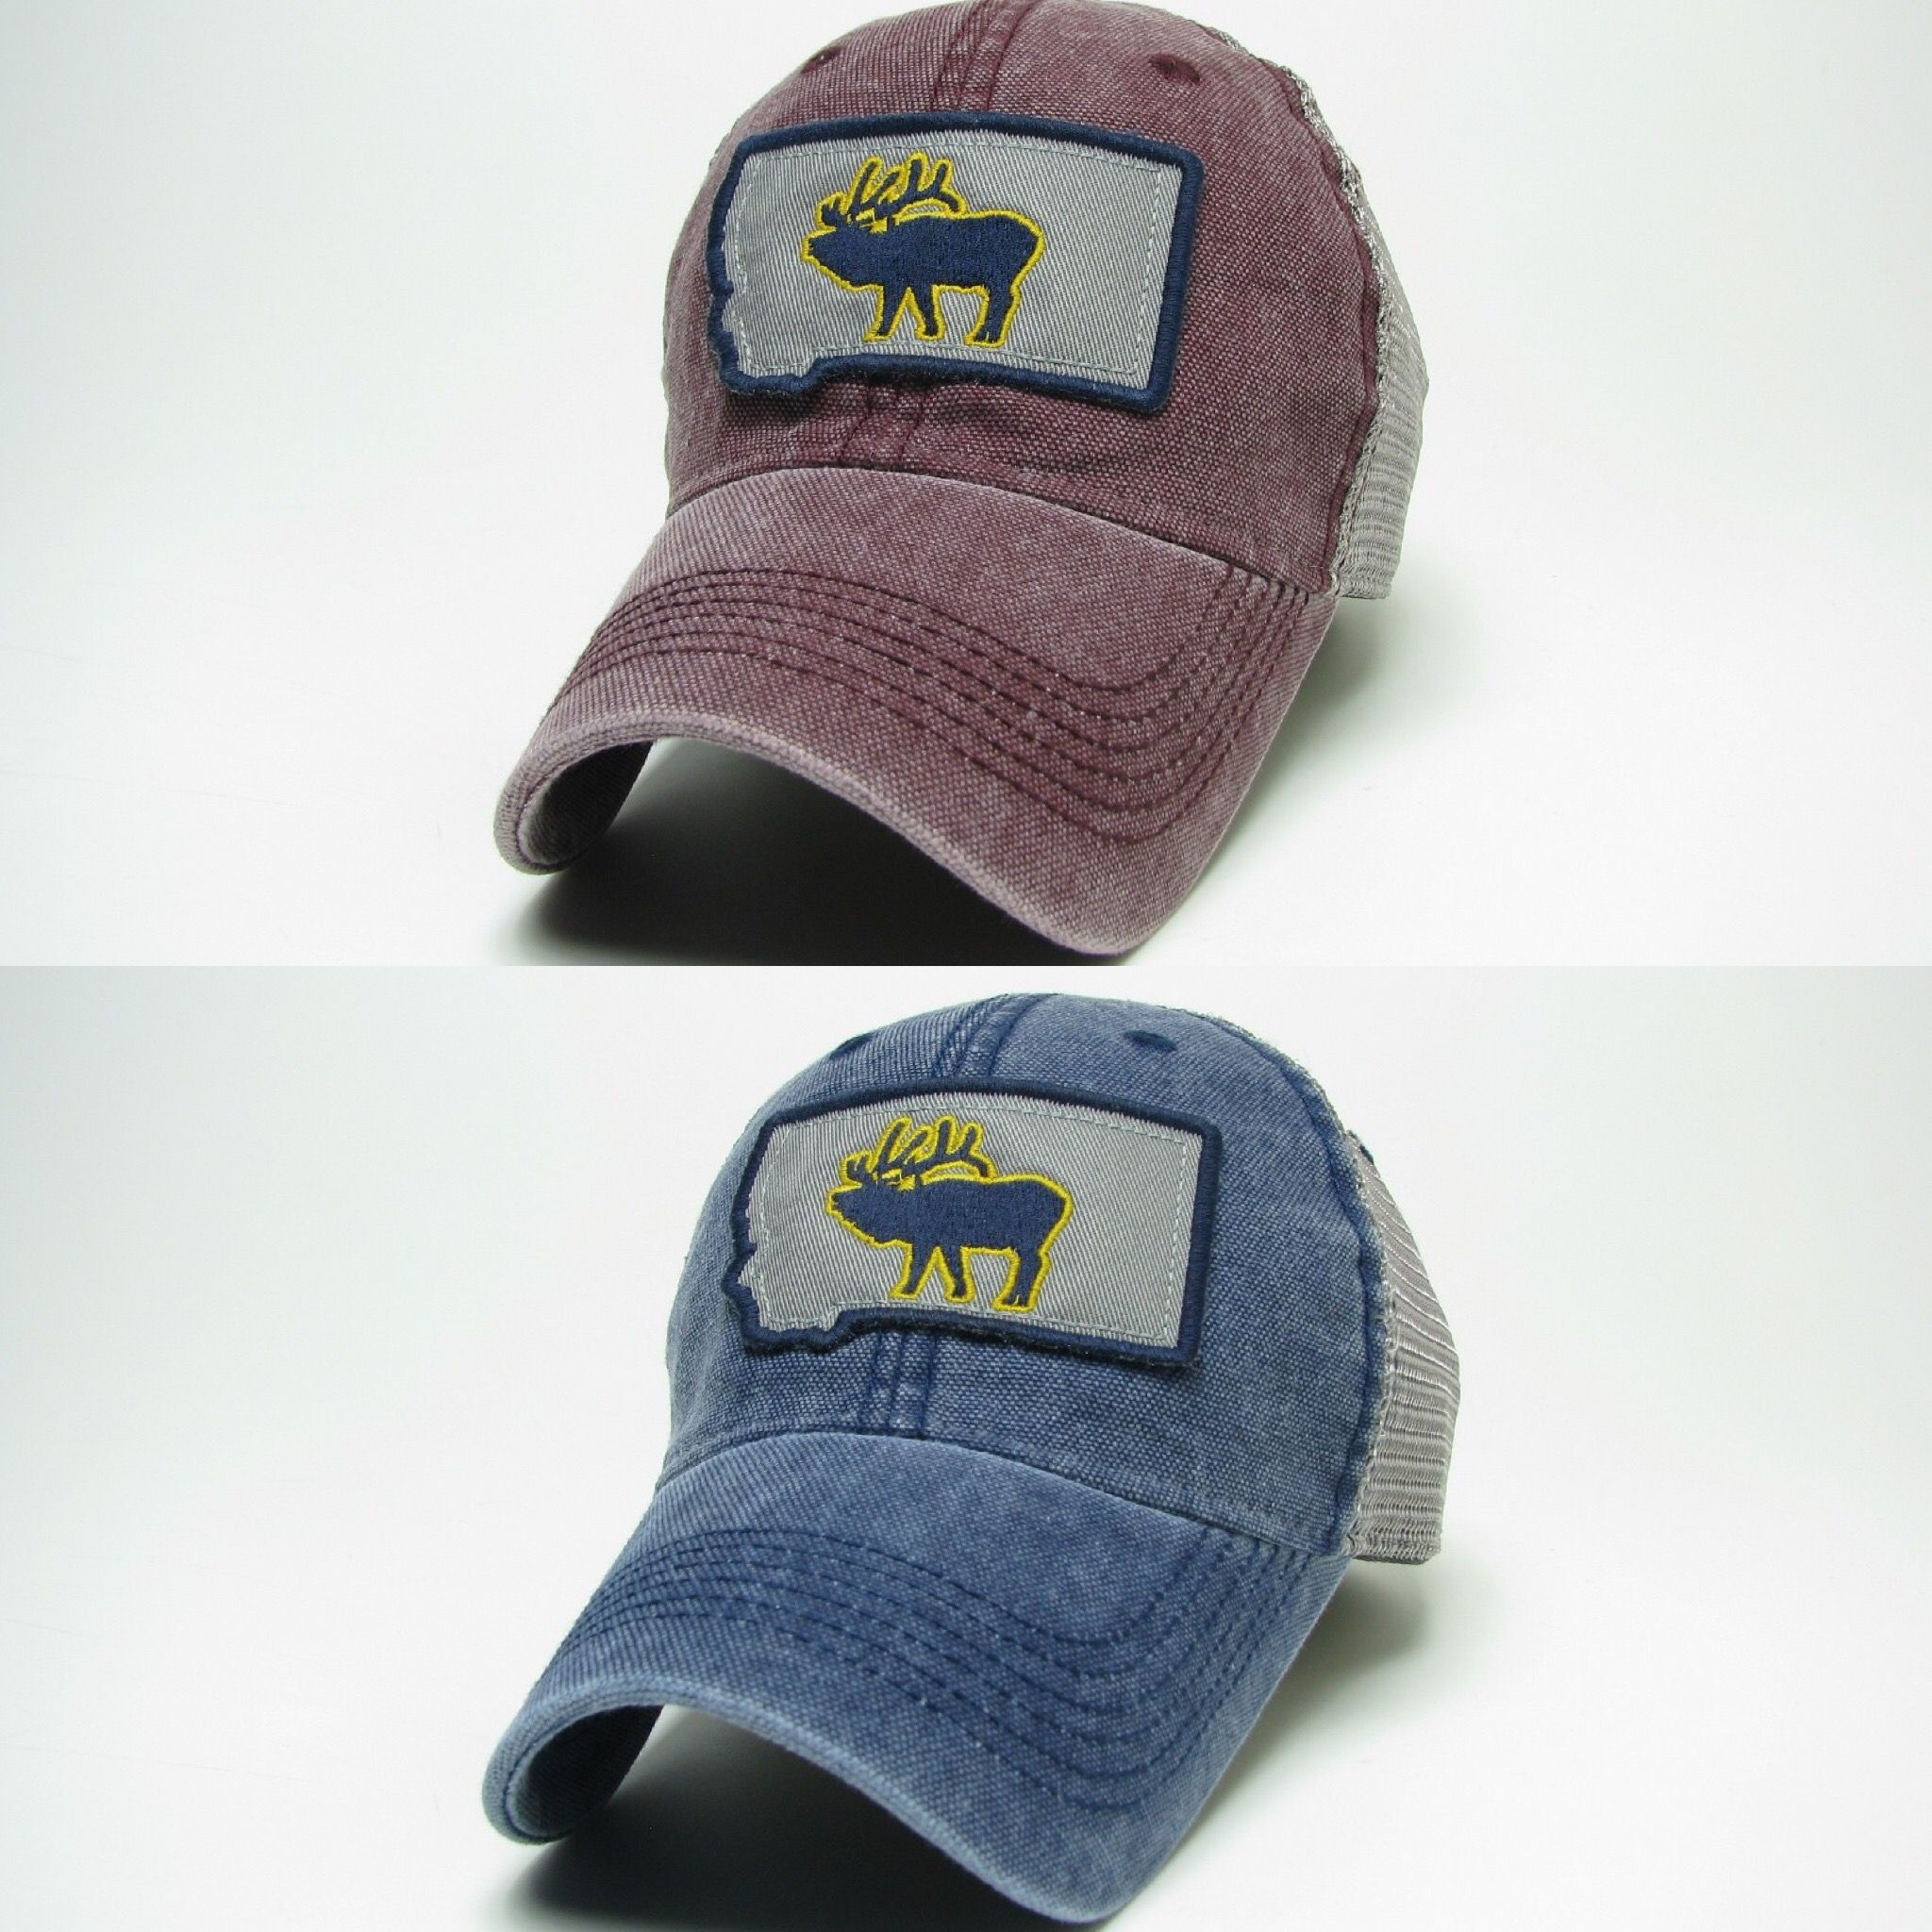 Montana trucker hats  100% cotton twill front and extra soft